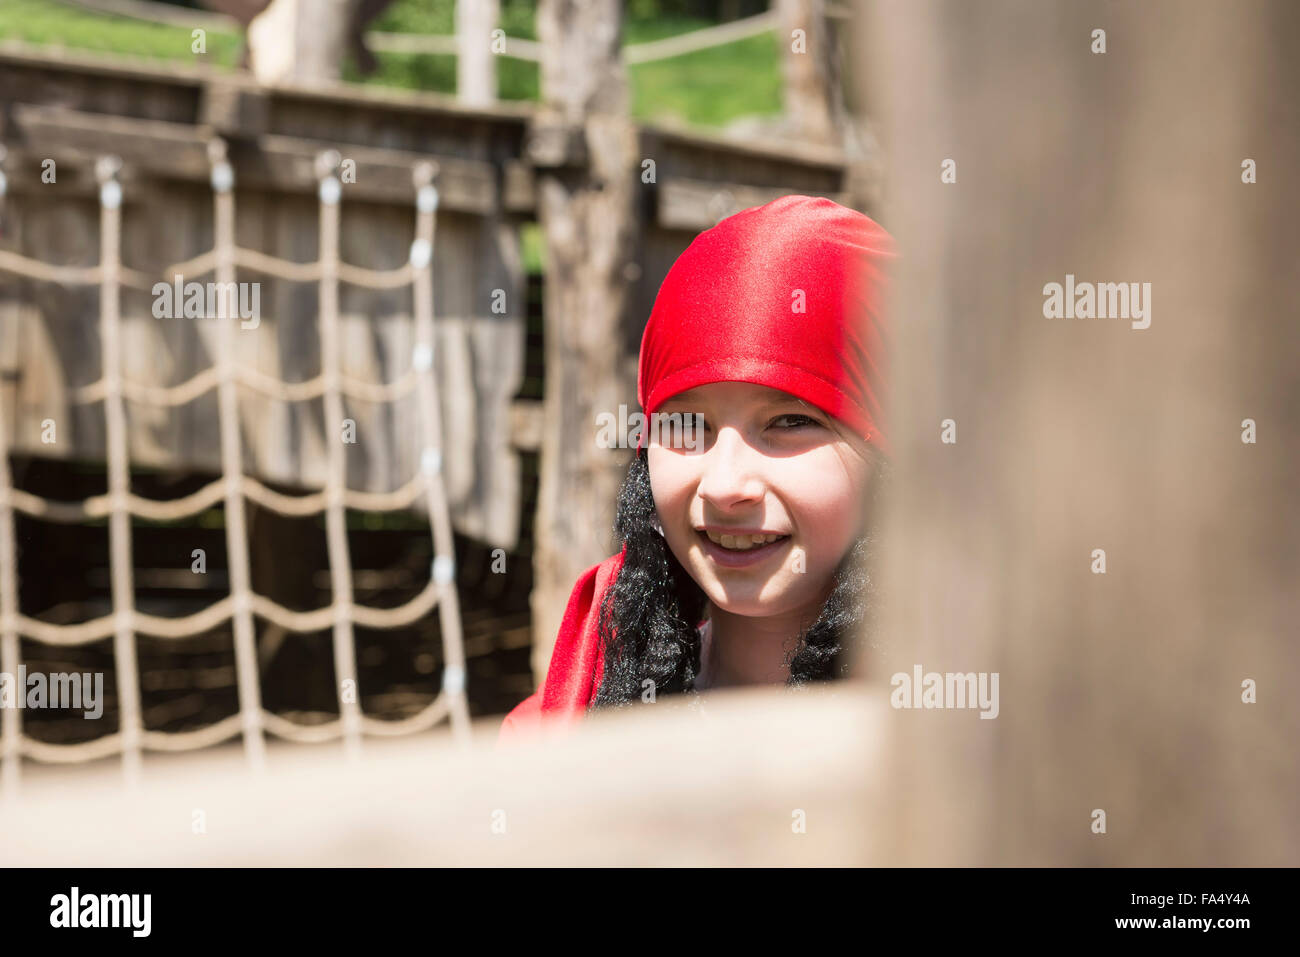 Portrait of a girl smiling in playground, Bavaria, Germany - Stock Image